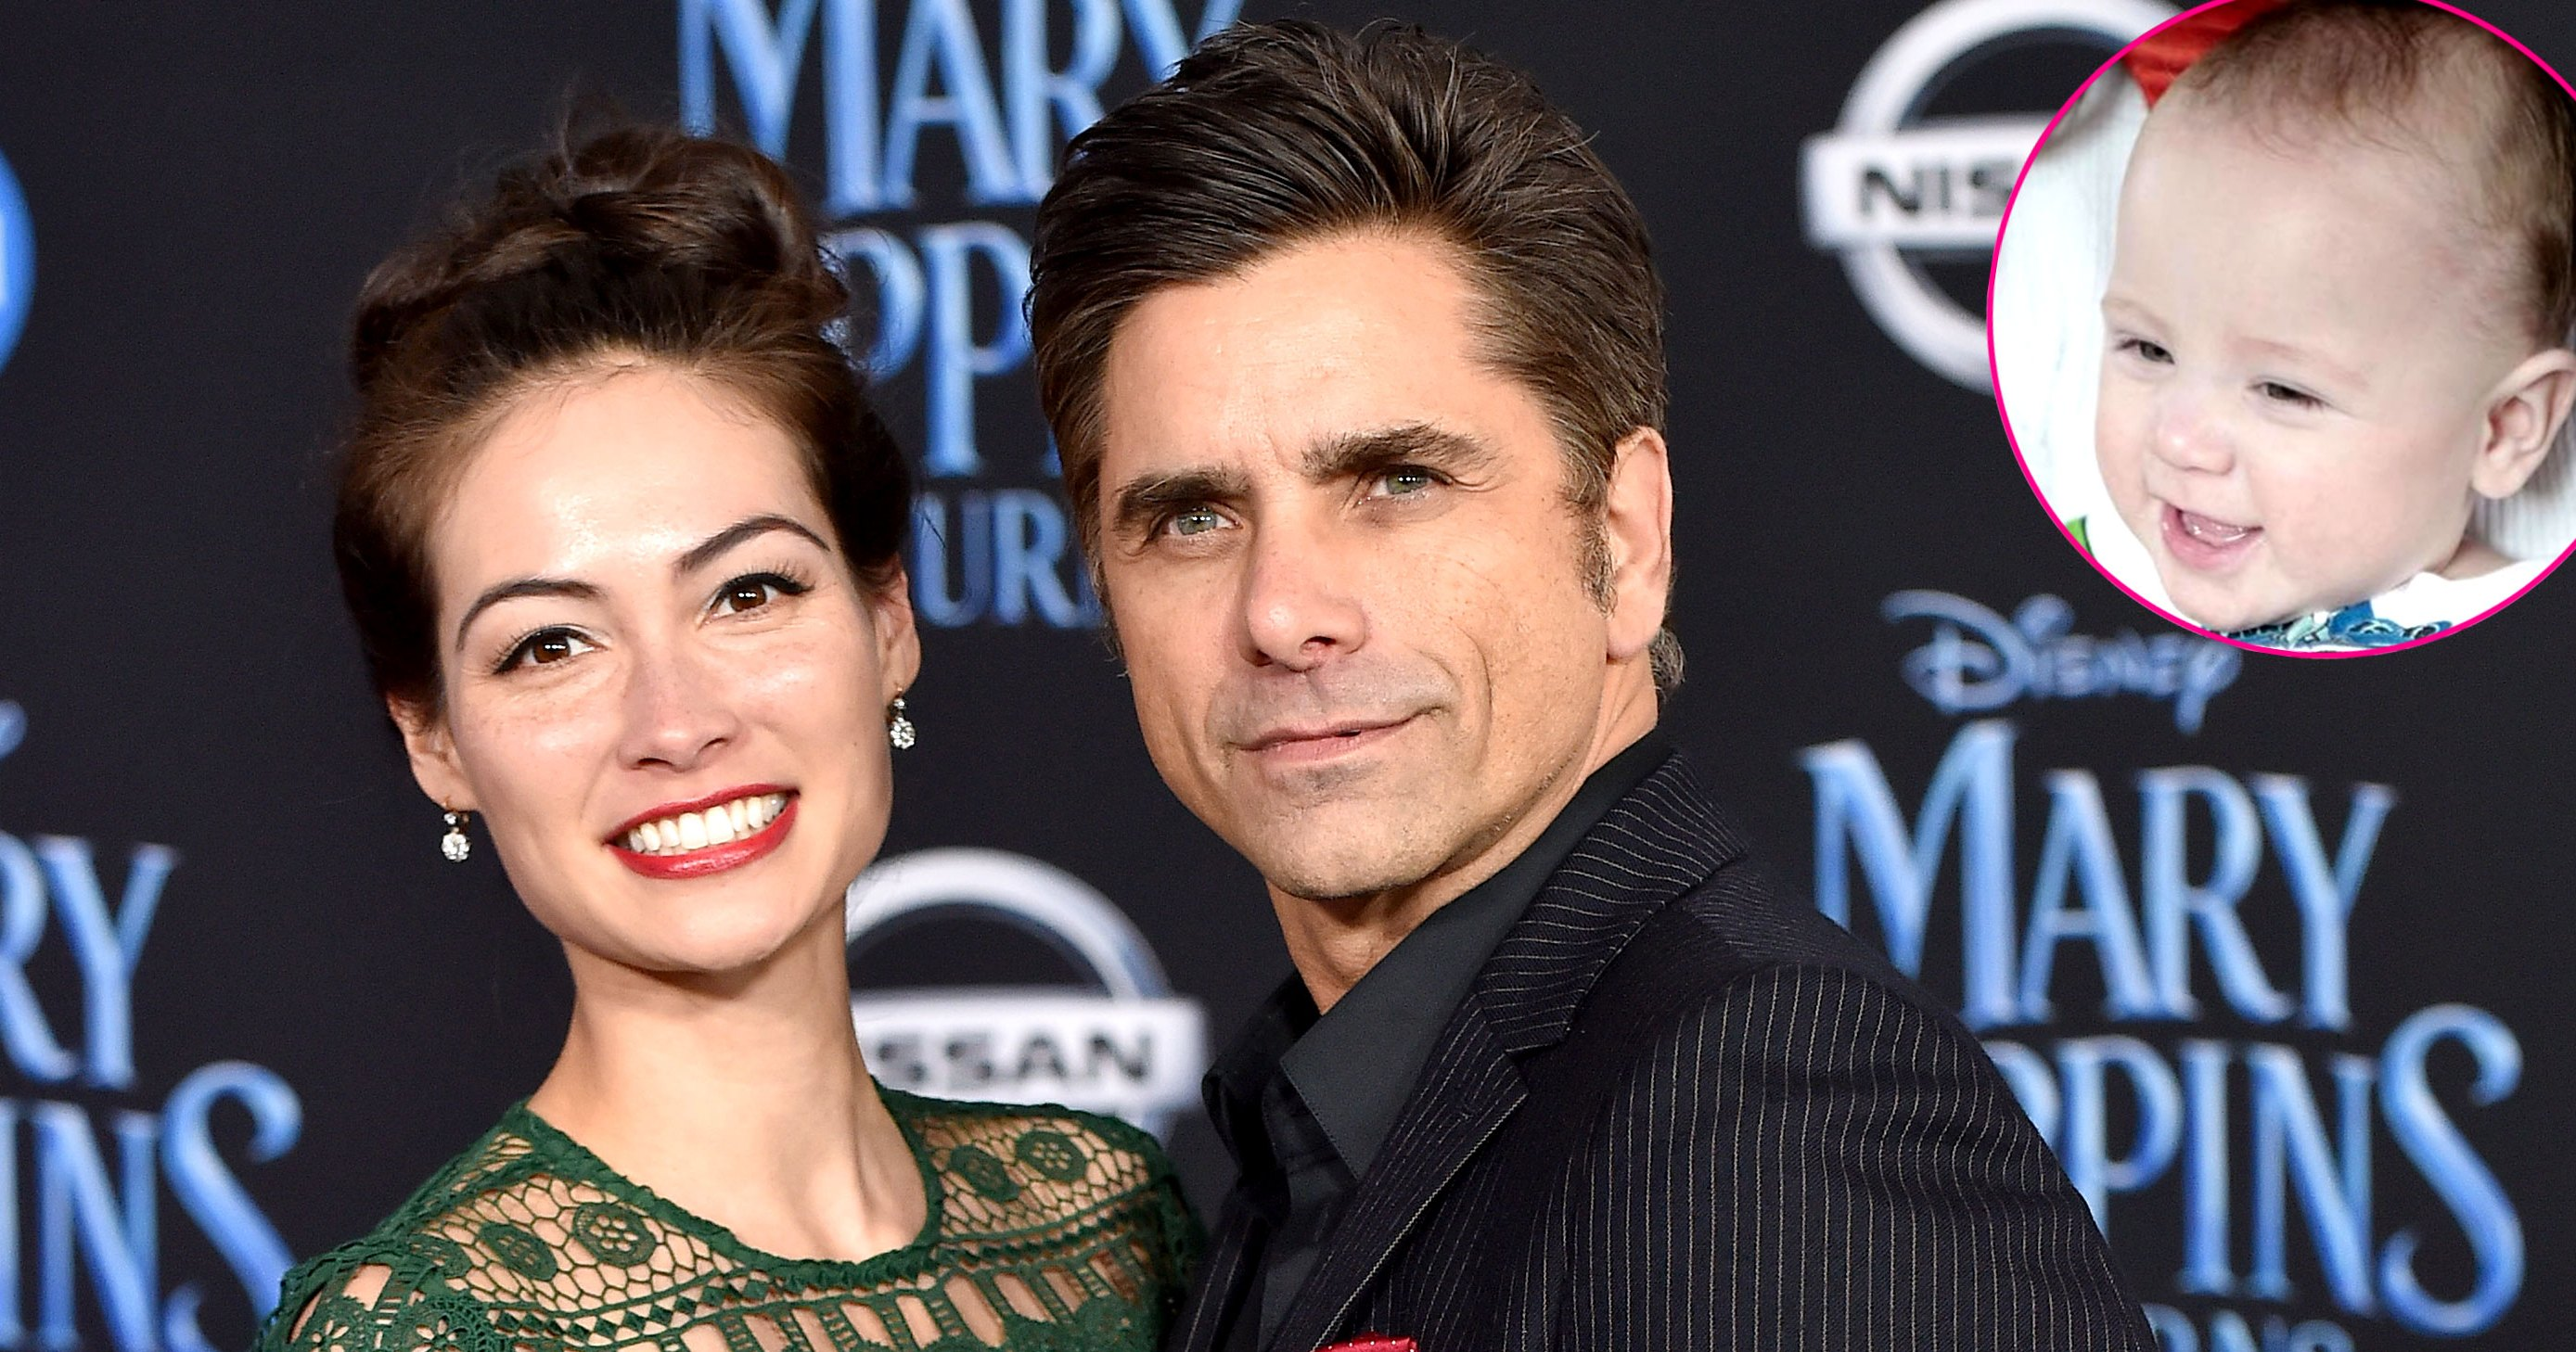 John Stamos Planning 'Curious George' First Birthday Party for Son